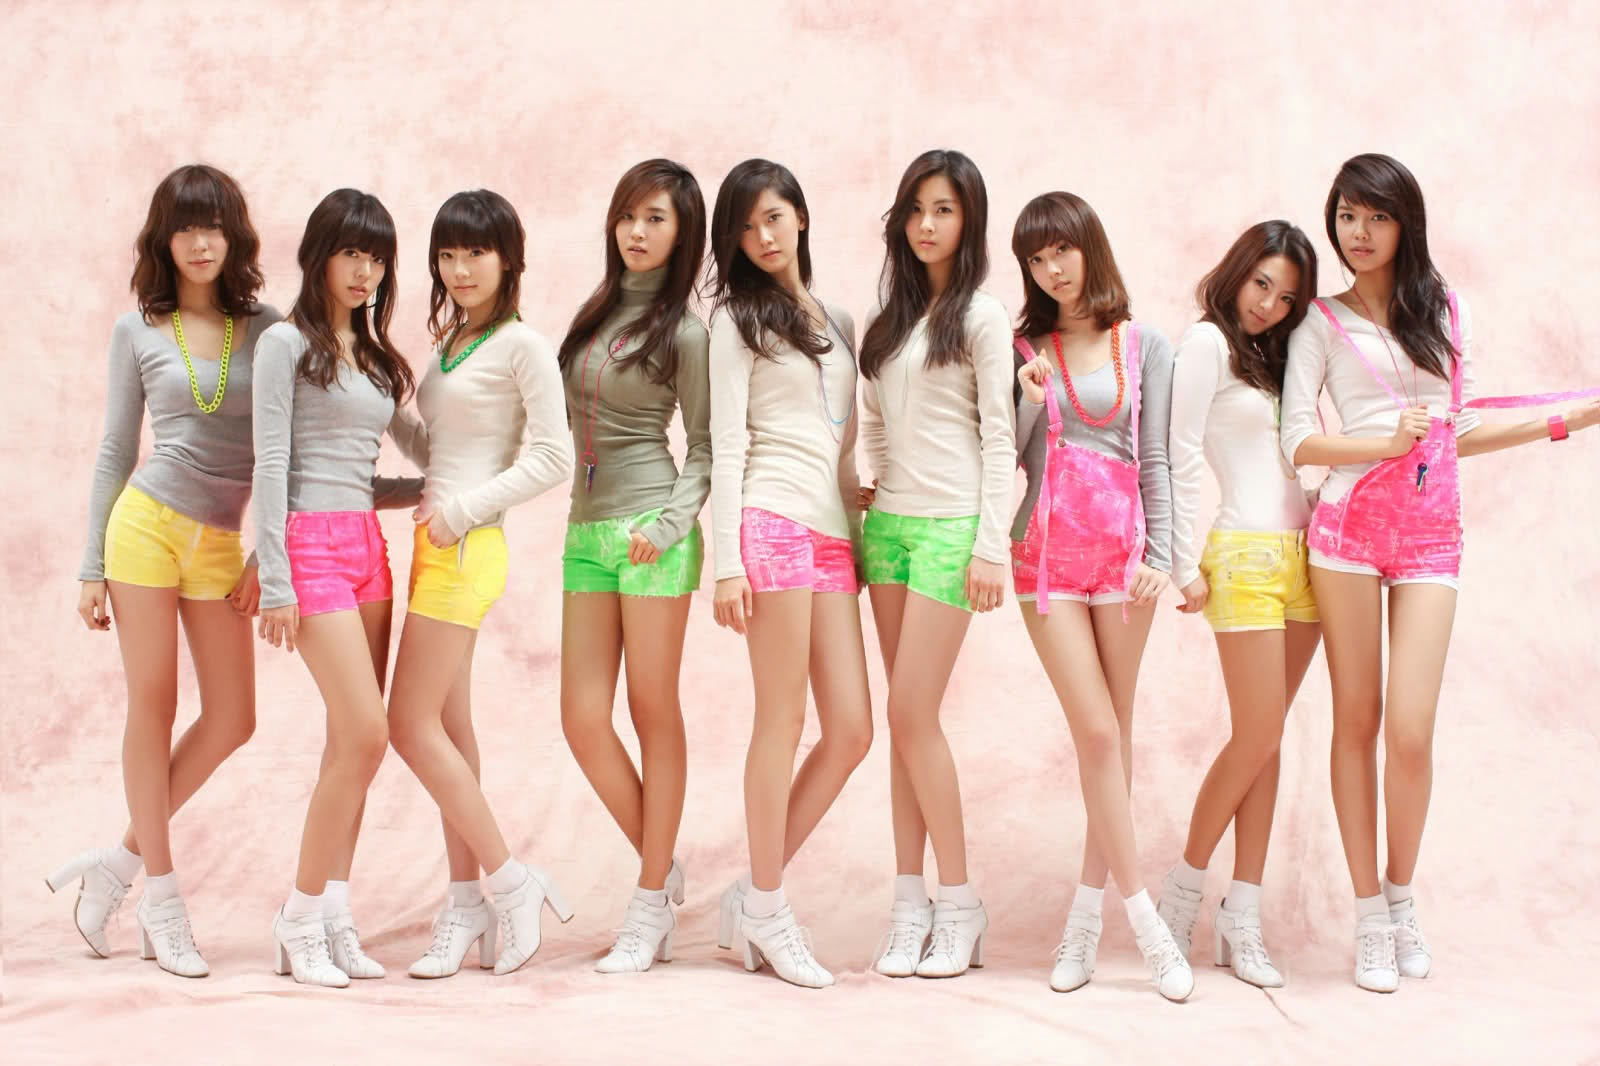 GORGEOUS KOREAN GIRLS - WHICH ONE IS YOUR FAVORITE?